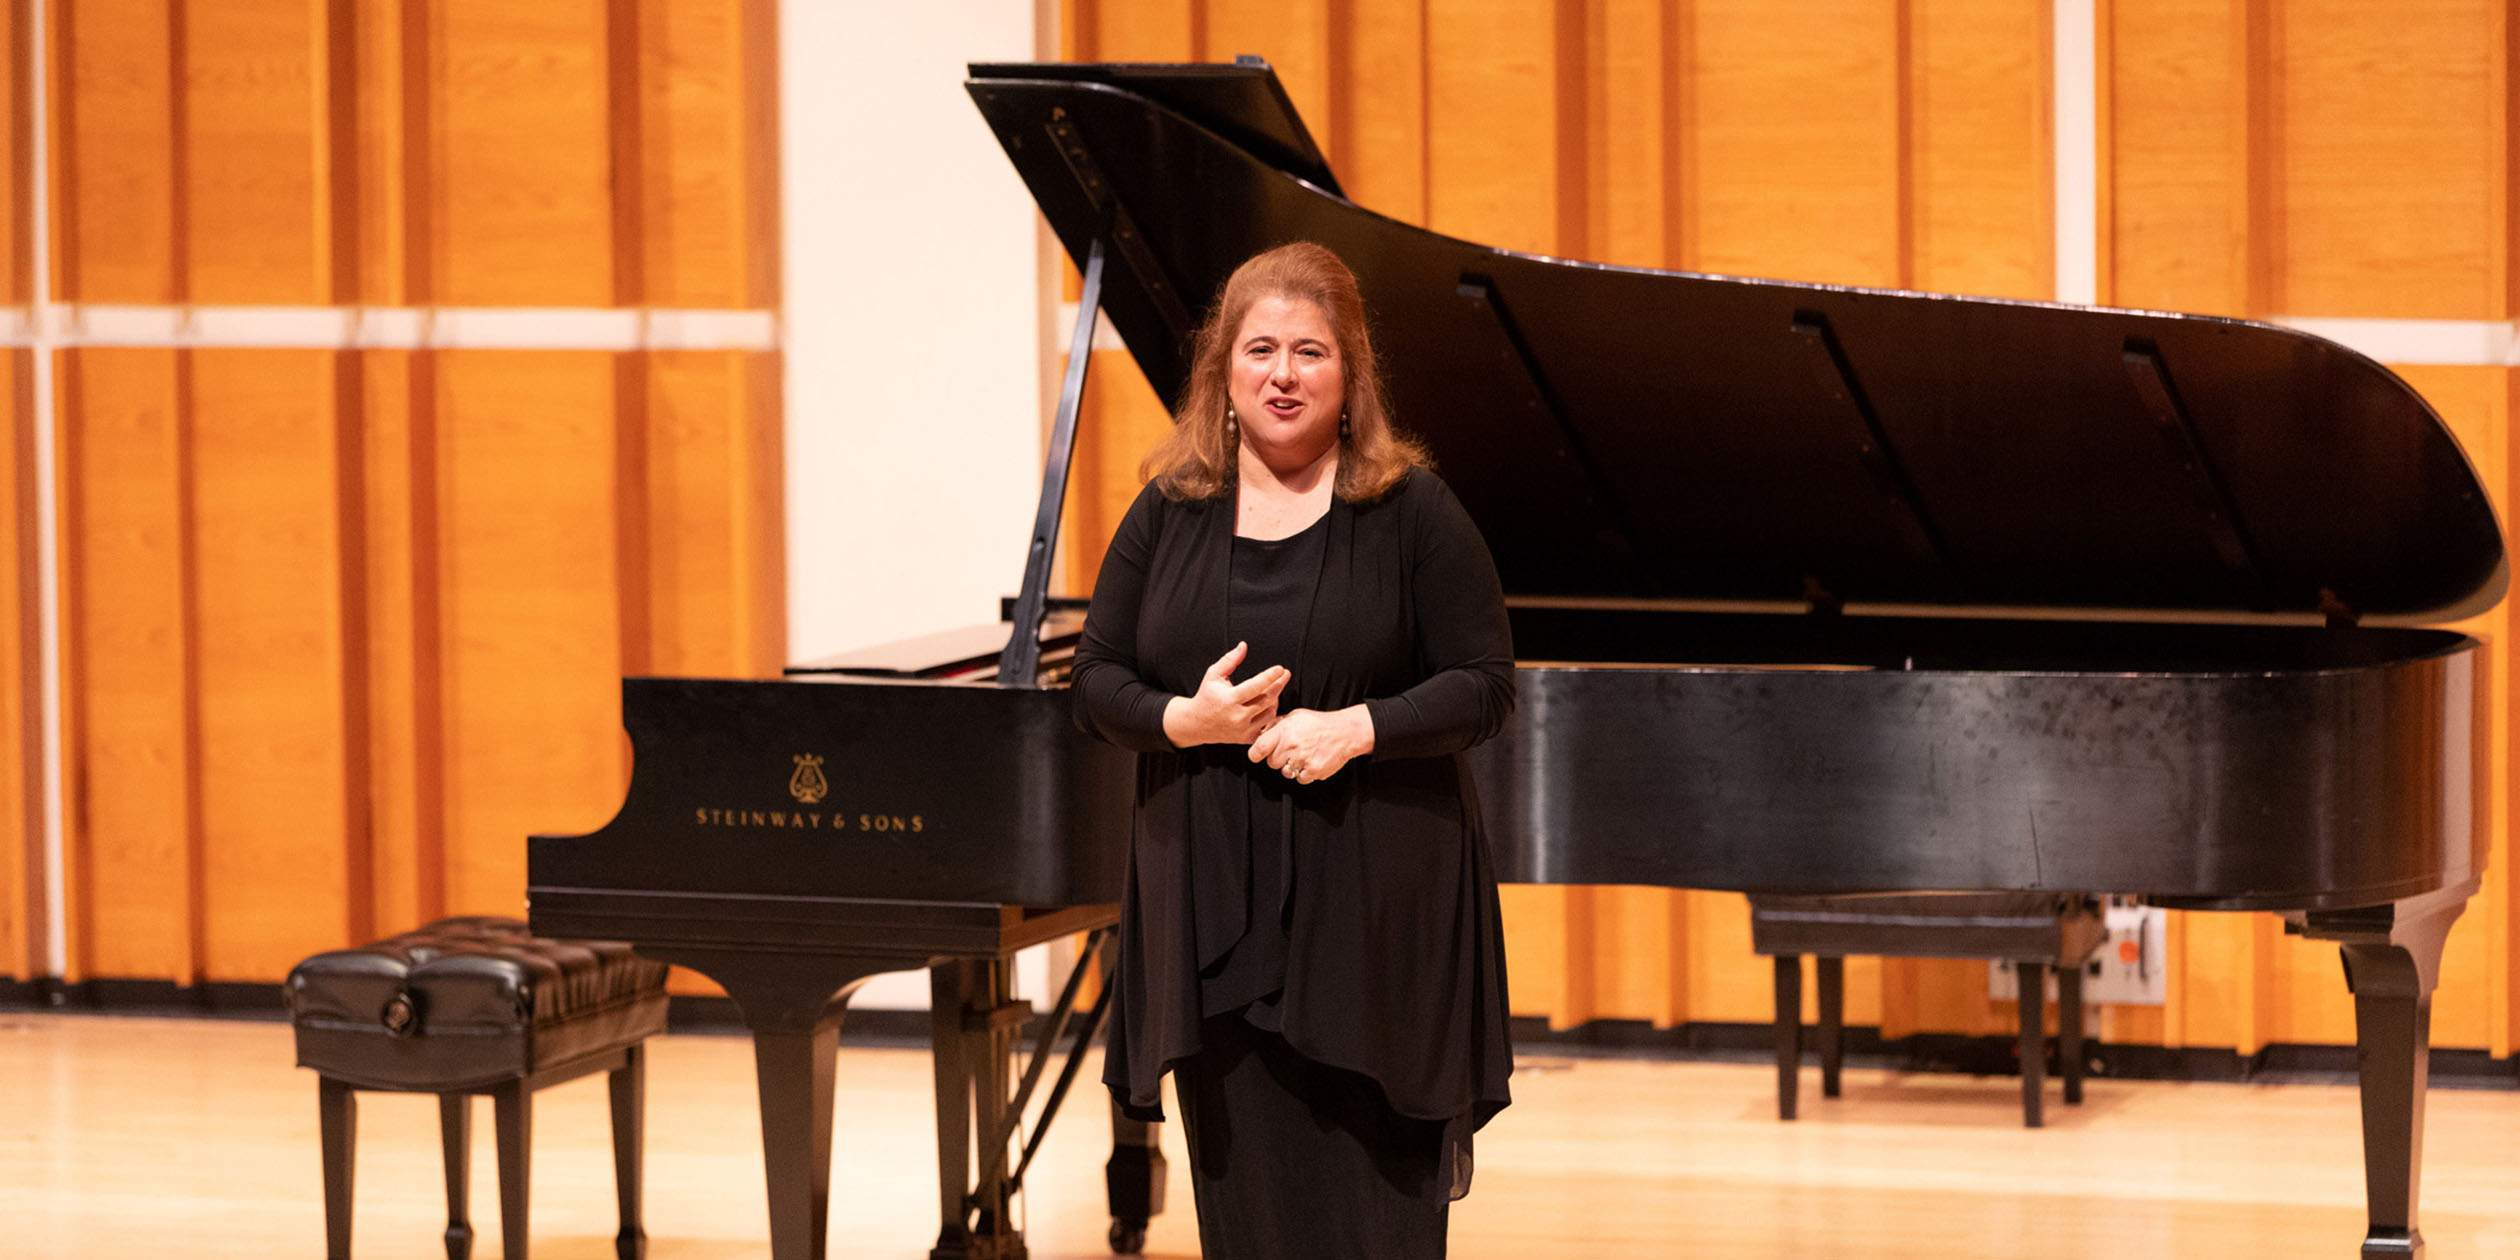 PREformances with Allison Charney: Chamber Music Celebration